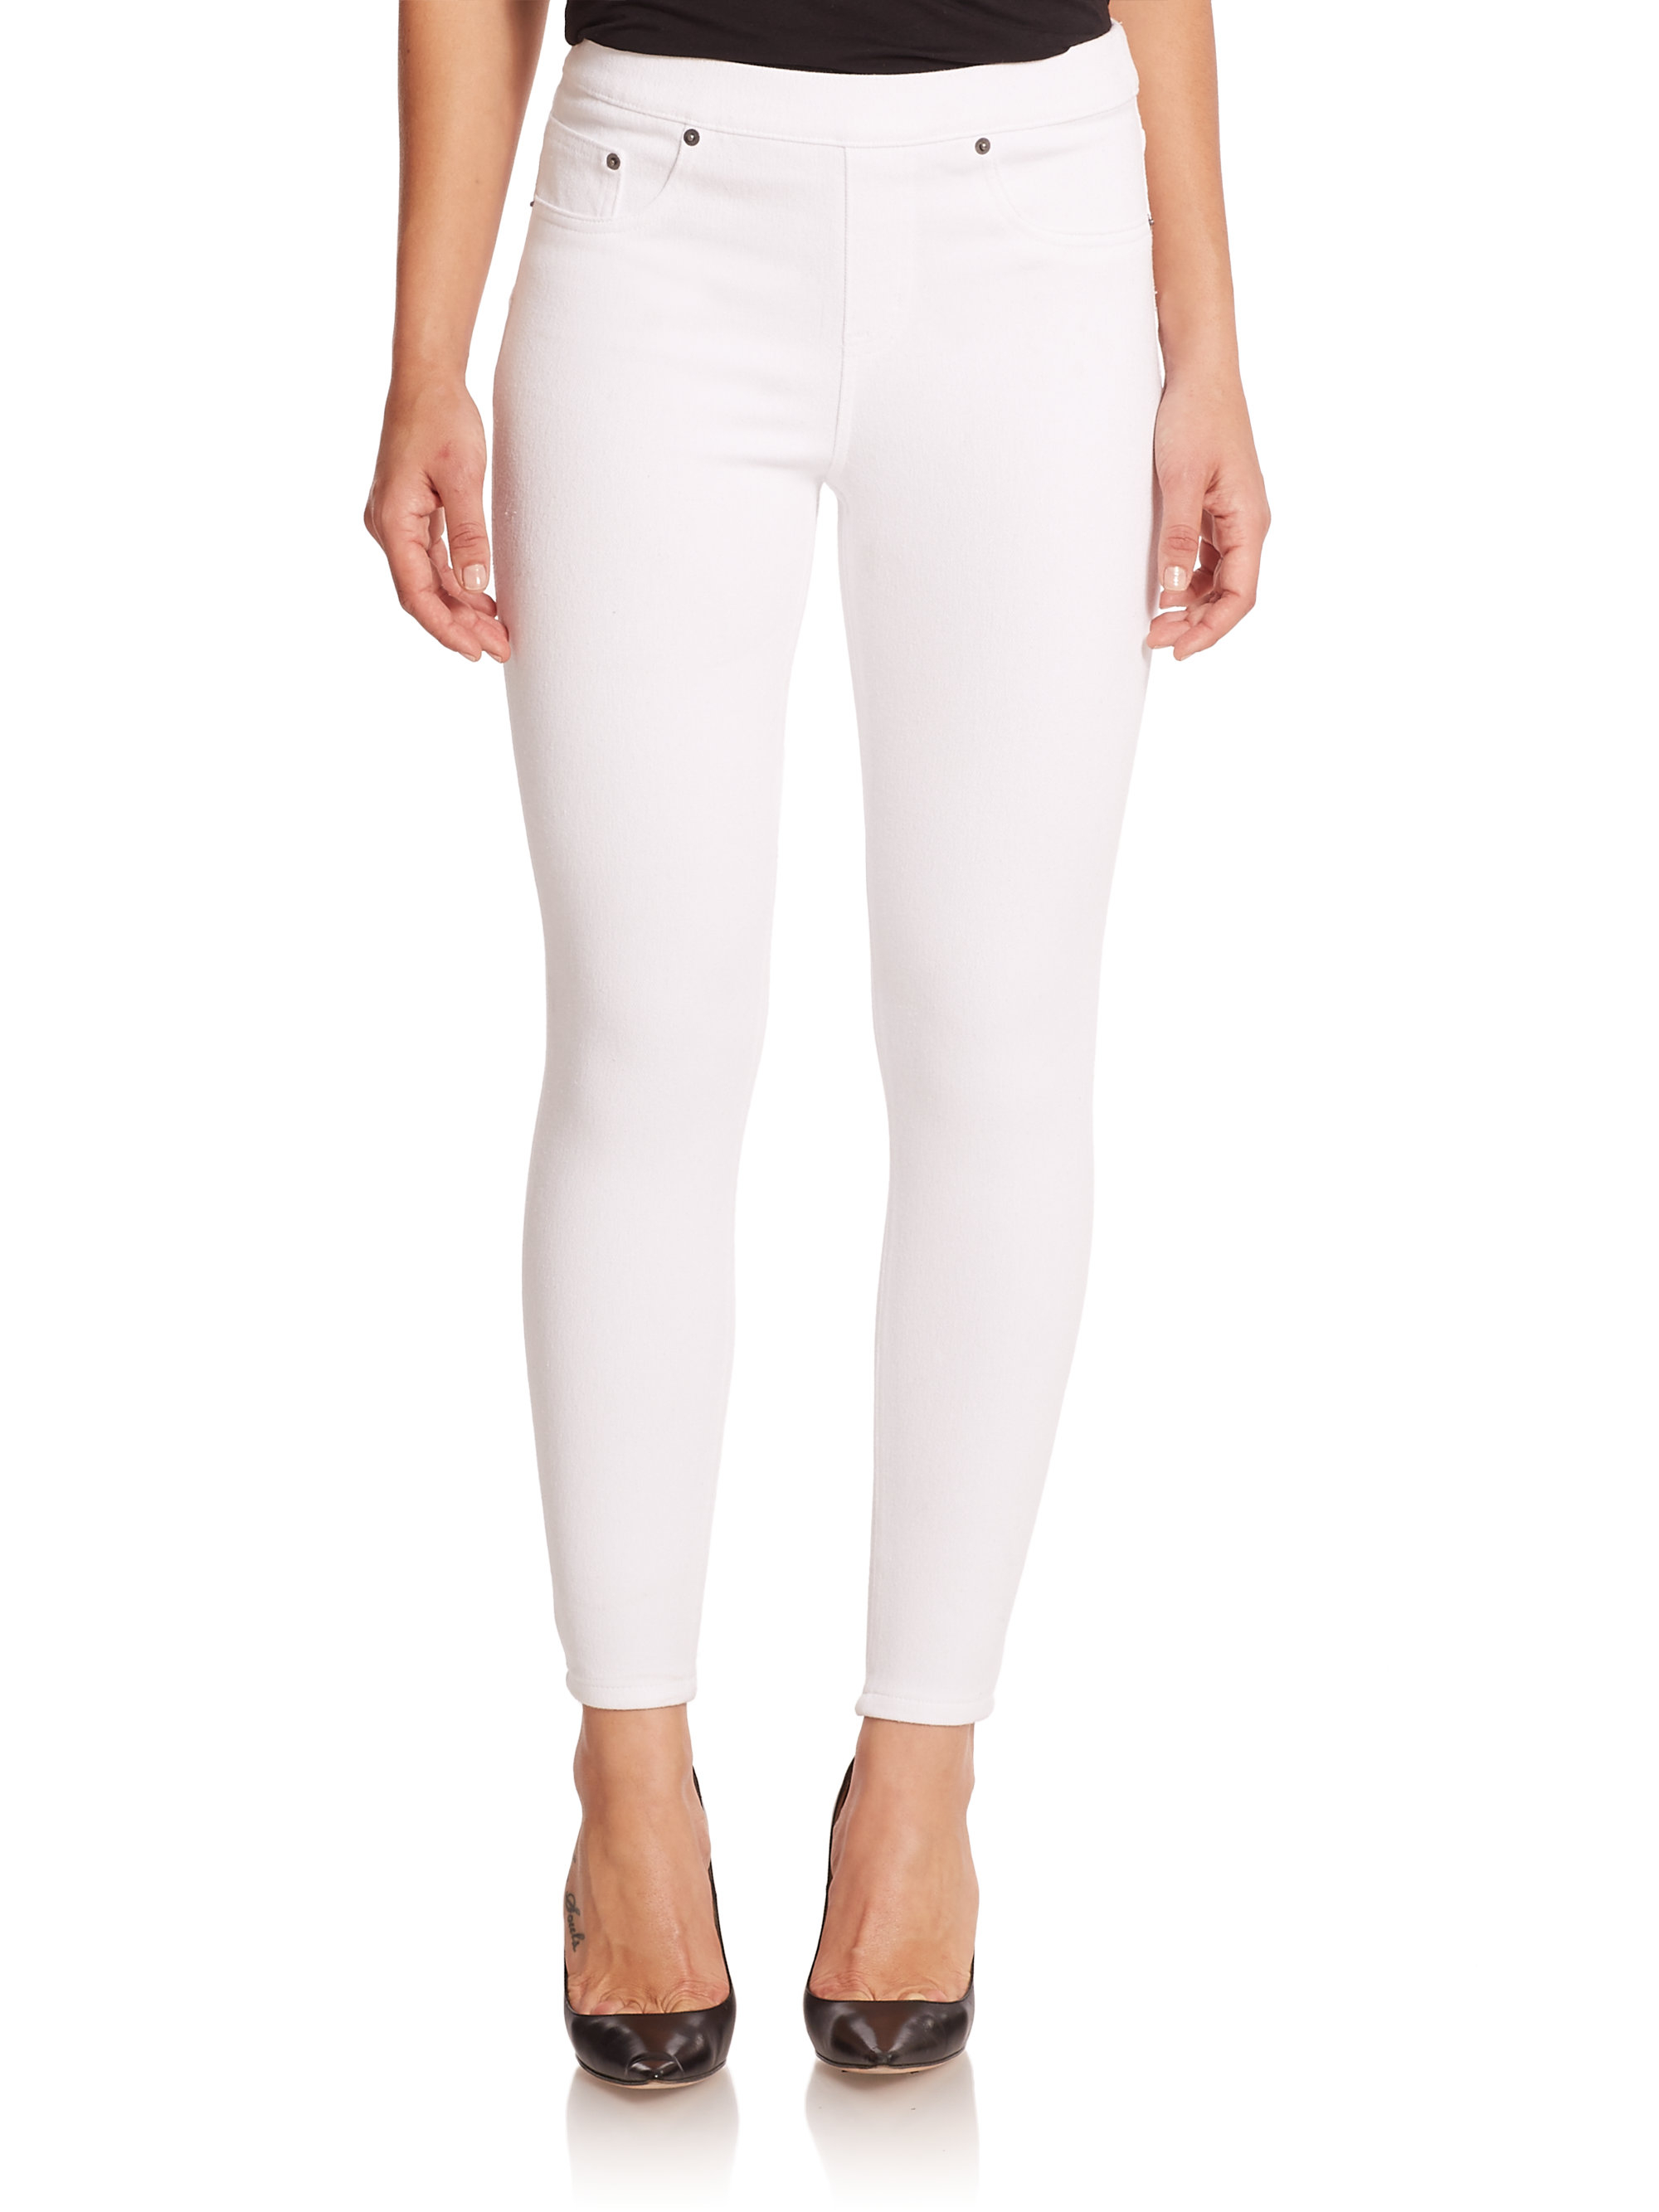 Lyst Spanx Ready To Wow Denim Ankle Leggings In White